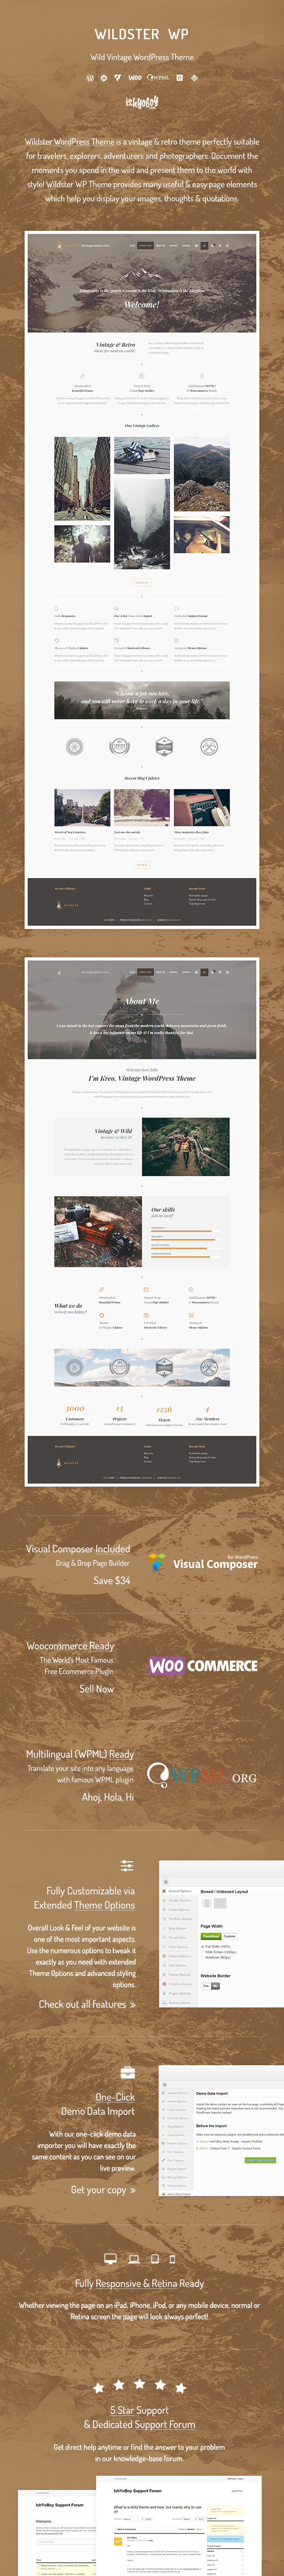 IshYoBoy | Wildster - Wild Vintage WordPress Theme